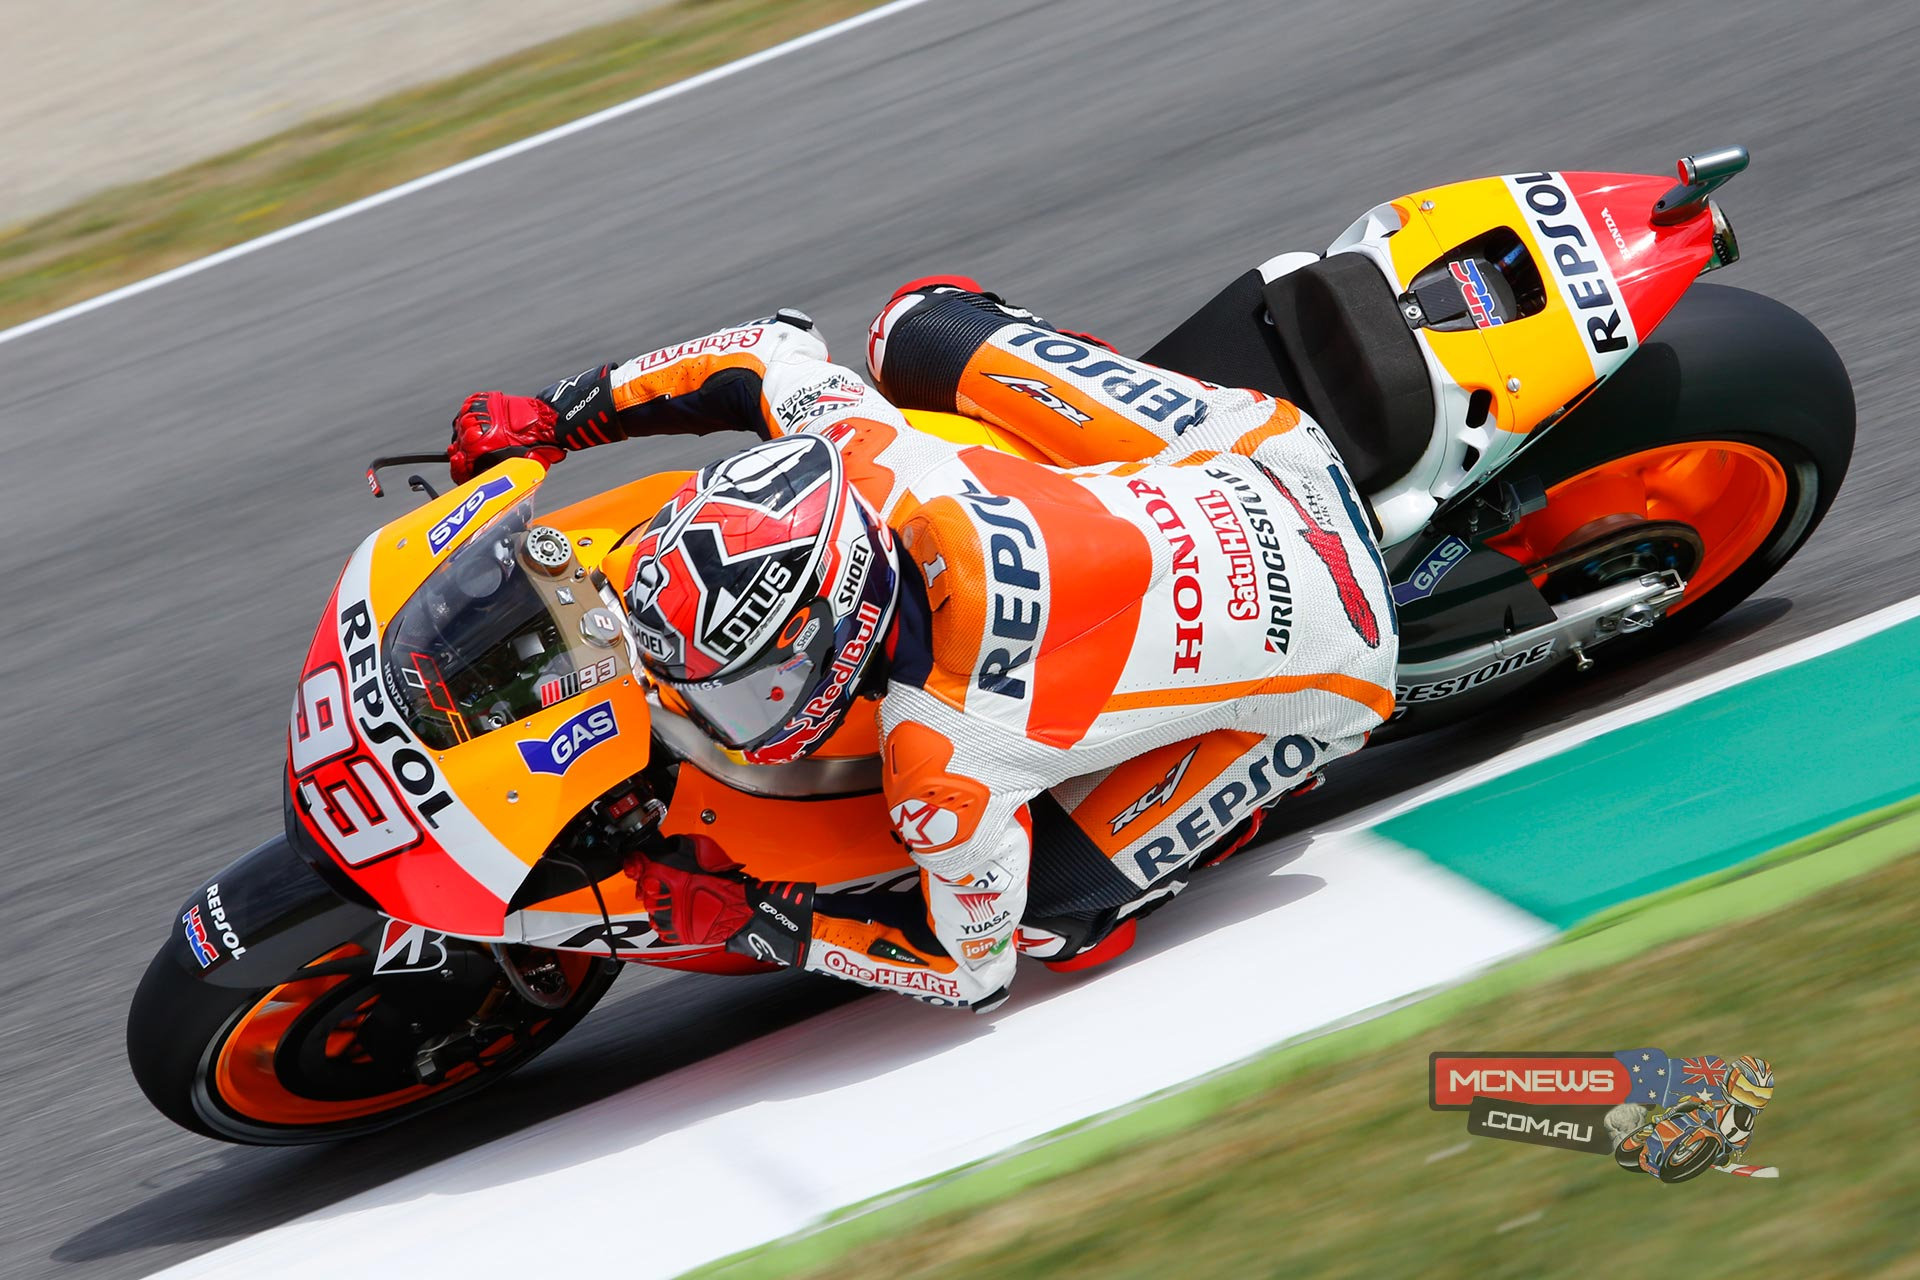 "Marc Marquez, Repsol Honda: 1st, 1m 47.270s - ""I'm very happy to have taken this pole position at a track that I found very difficult last year. I've felt good on the bike right from the opening practice session this time around, and this shows that we are working well this season – because in 2013 it was much harder to be up at the front. As for the race, it will be difficult to break away and do what I've been doing up to now, because at this track you tend to ride in a group and things are more tightly packed. However, I will try to give 100 percent in order to fight for the victory."""